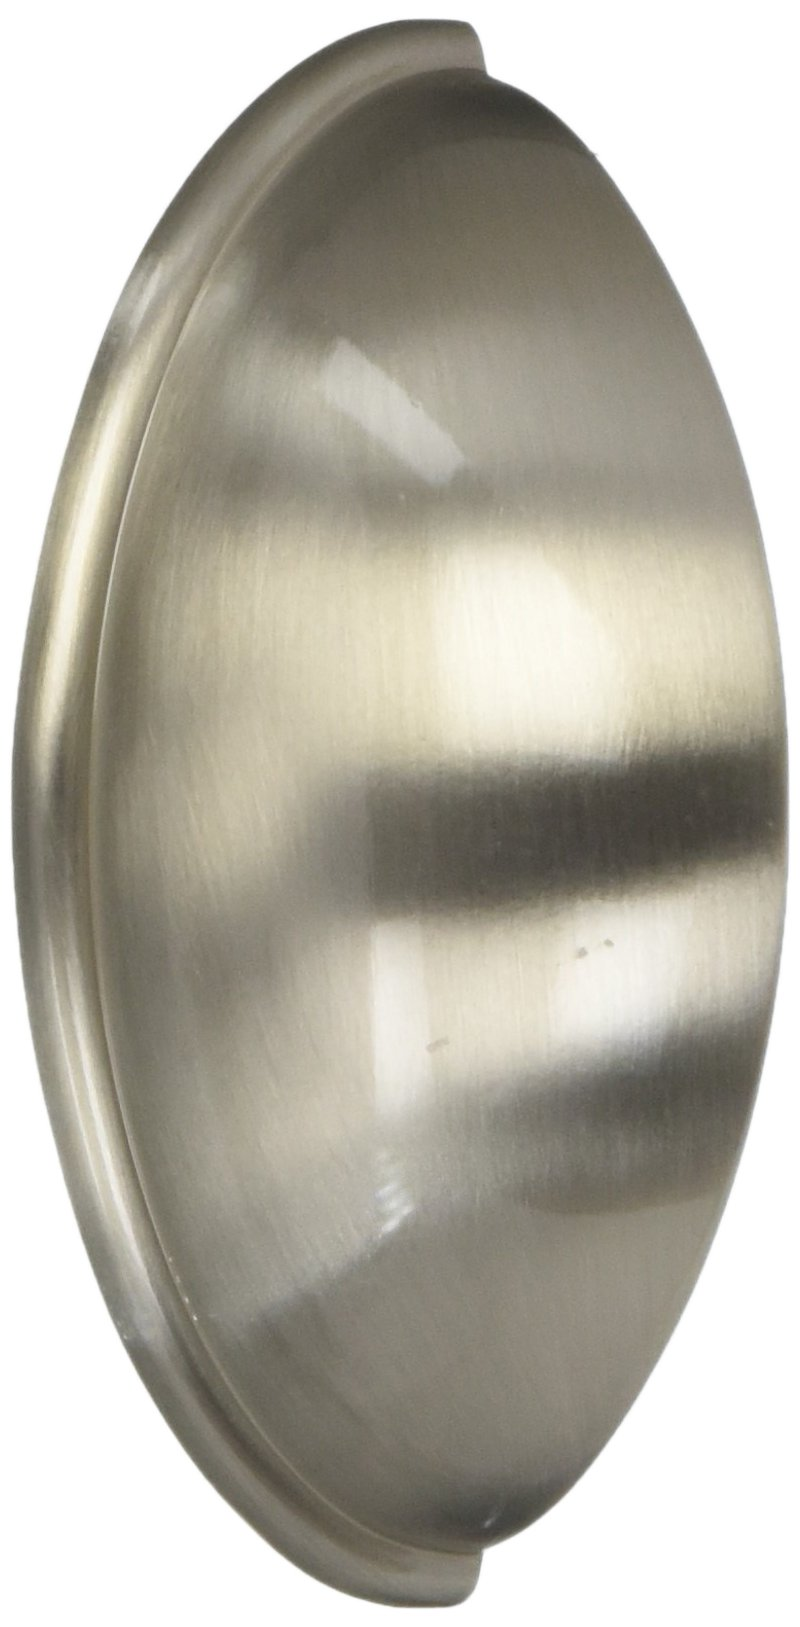 4-1//2 Overall Length Hole Centers 10 Pack 3-3//4 96mm Amerock BP53702-G10 Satin Nickel Cabinet Hardware Kane Pull